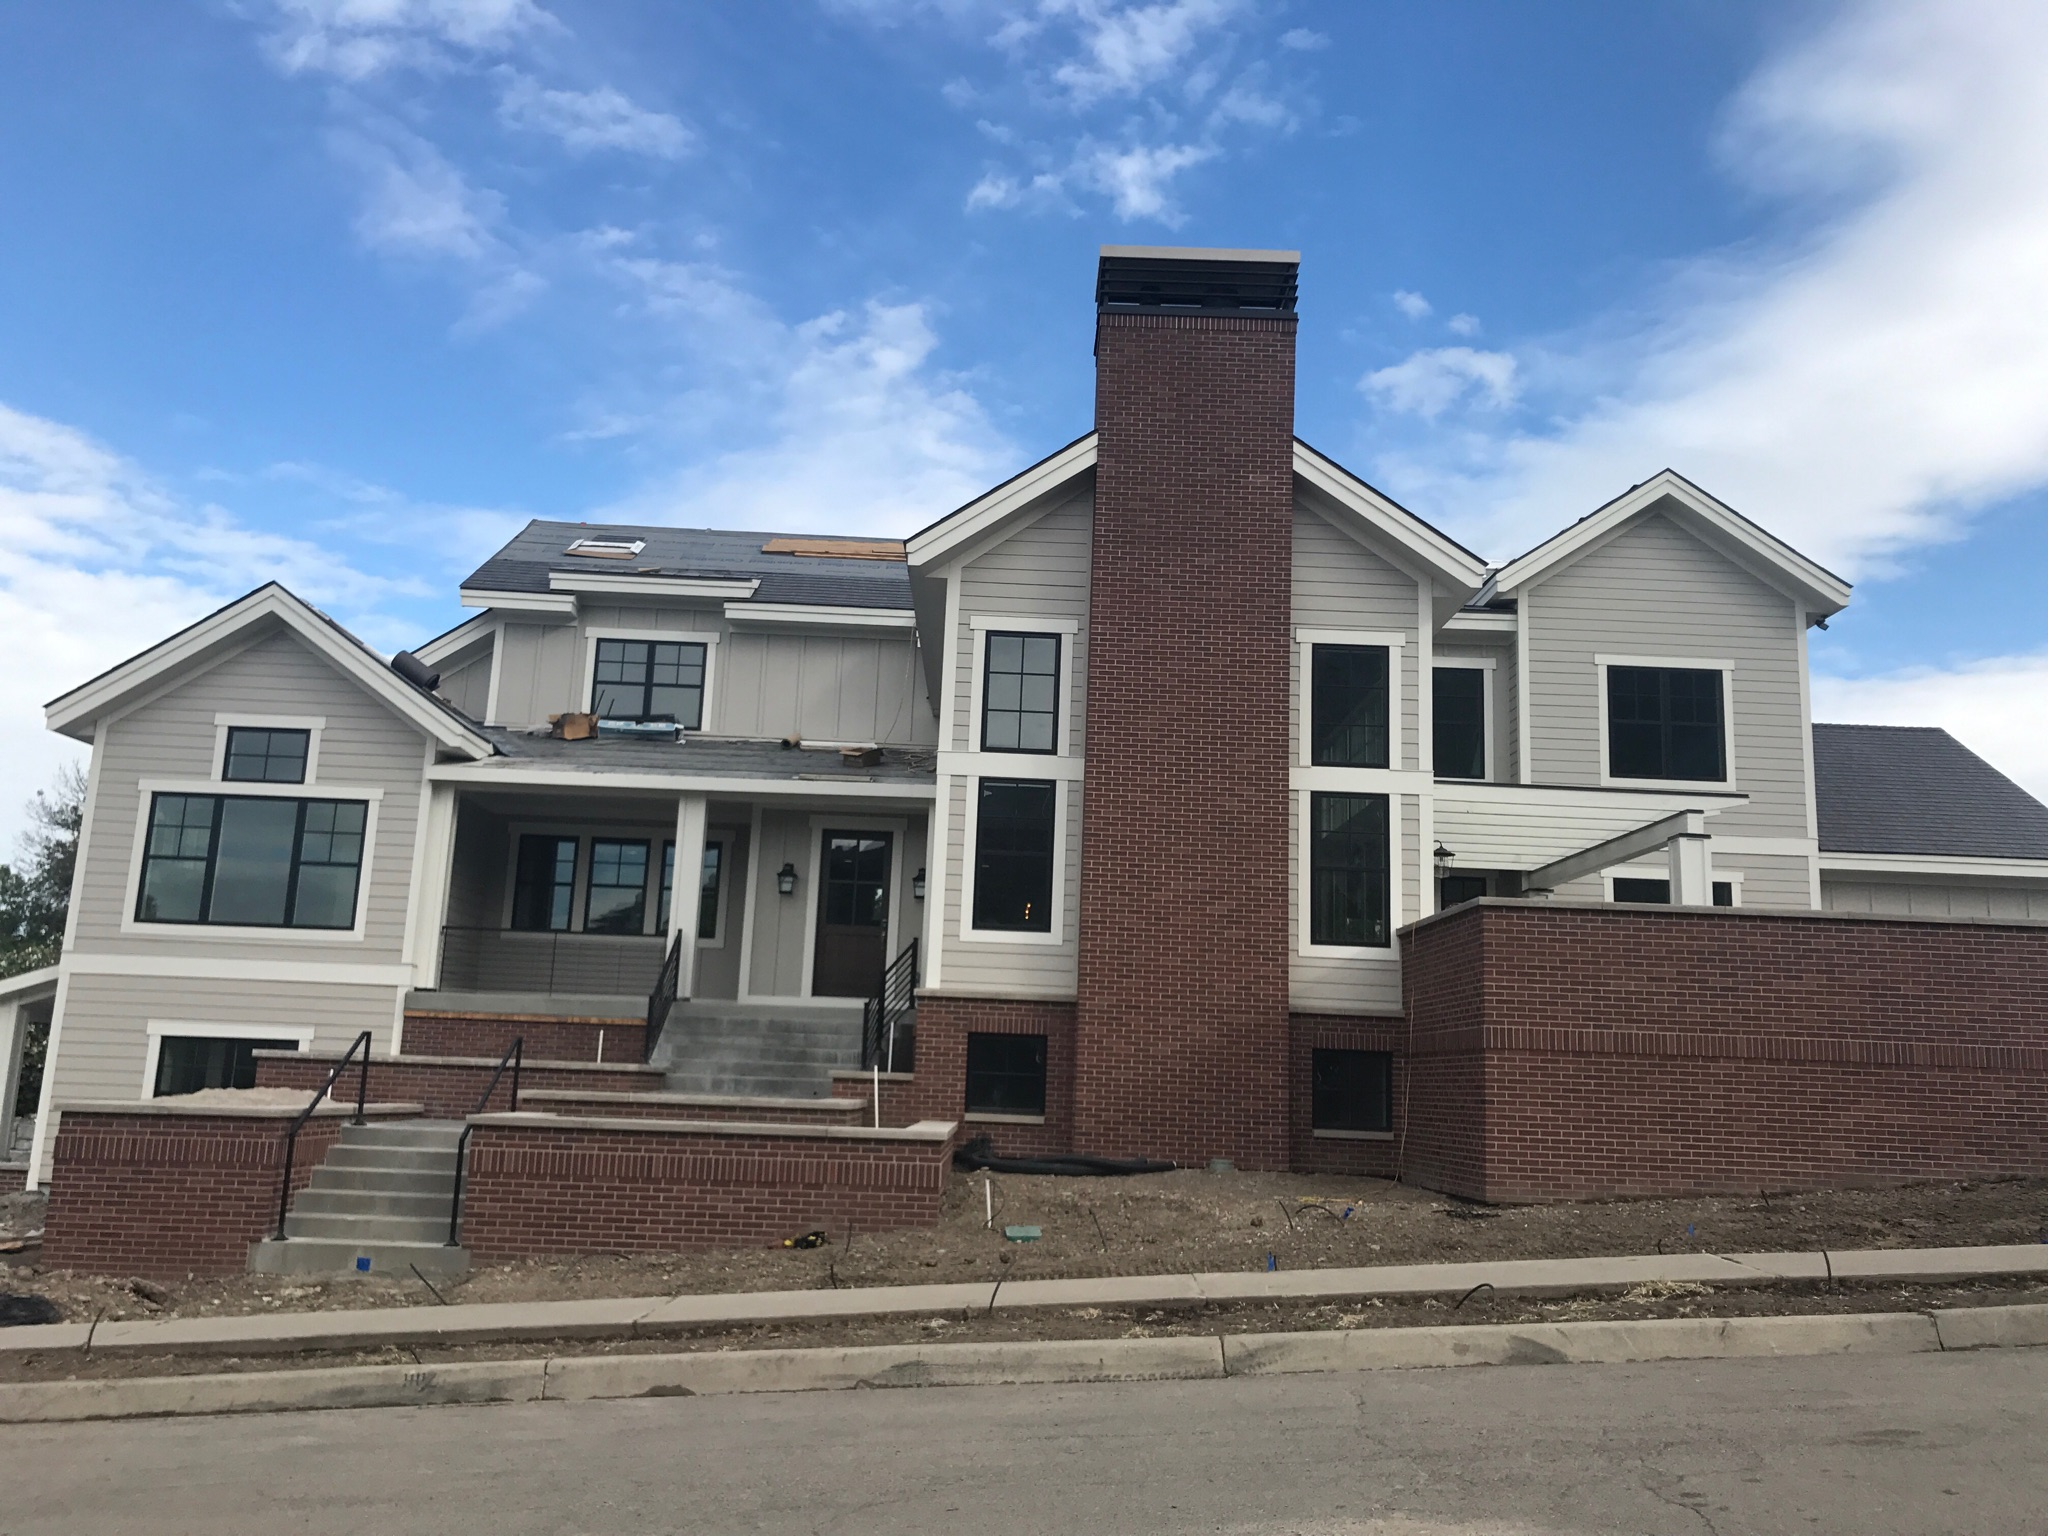 2017 utah valley parade of homes presented by utah valley for Utah homebuilders